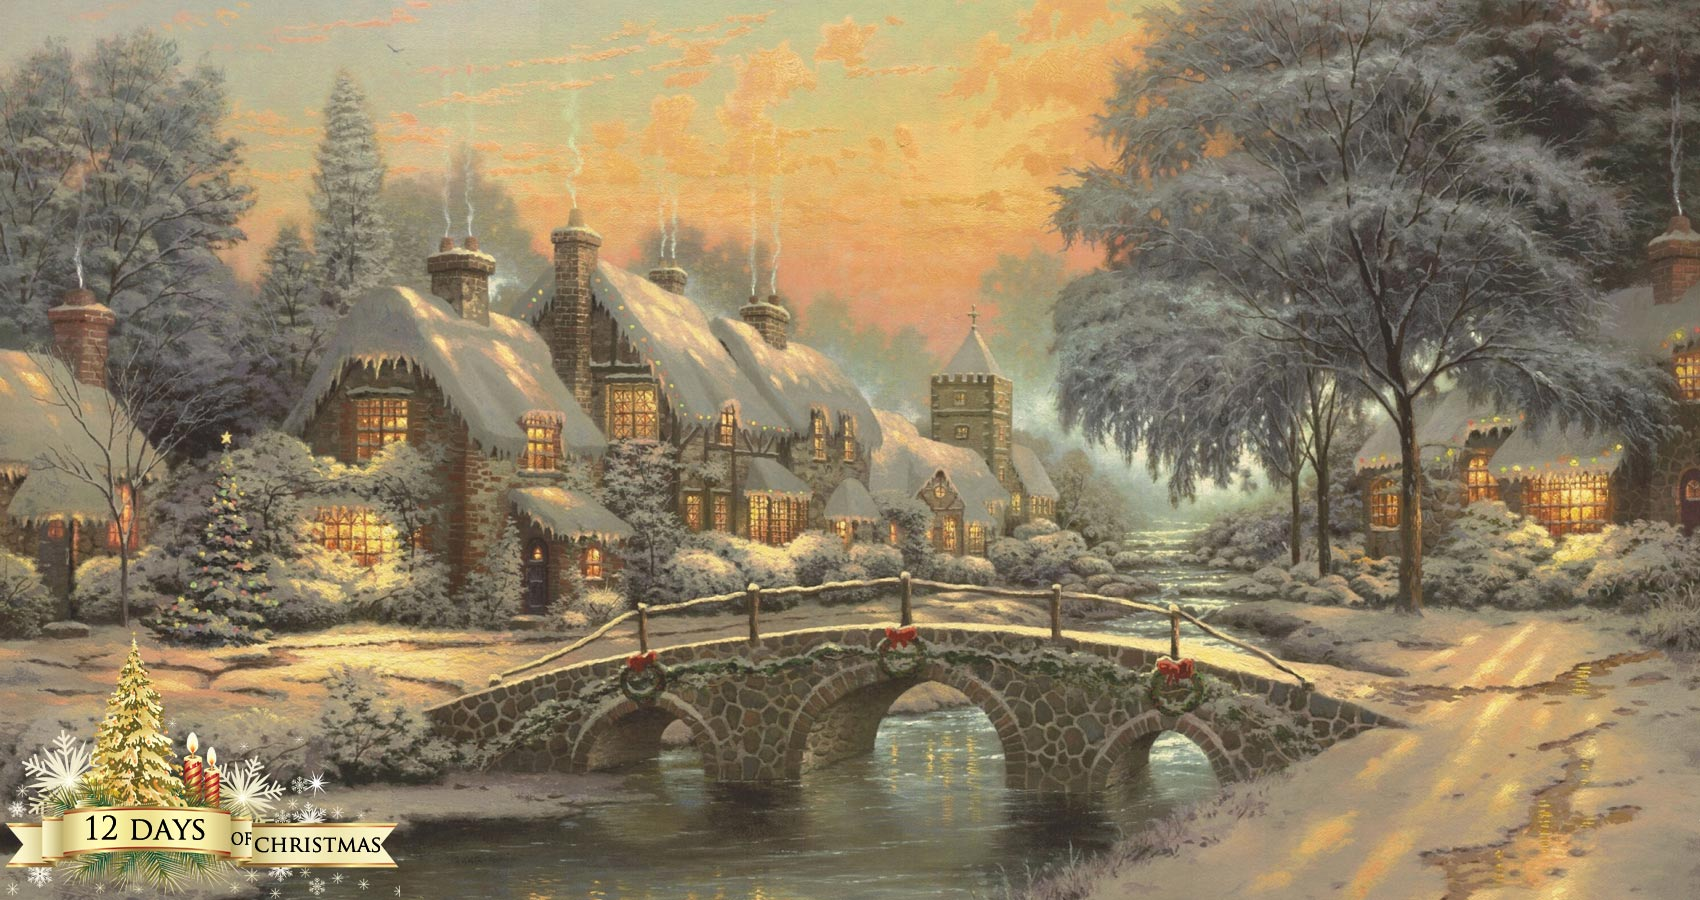 Christmas Magic, a poem by Phyllis P. Colucci at Spillwords.com